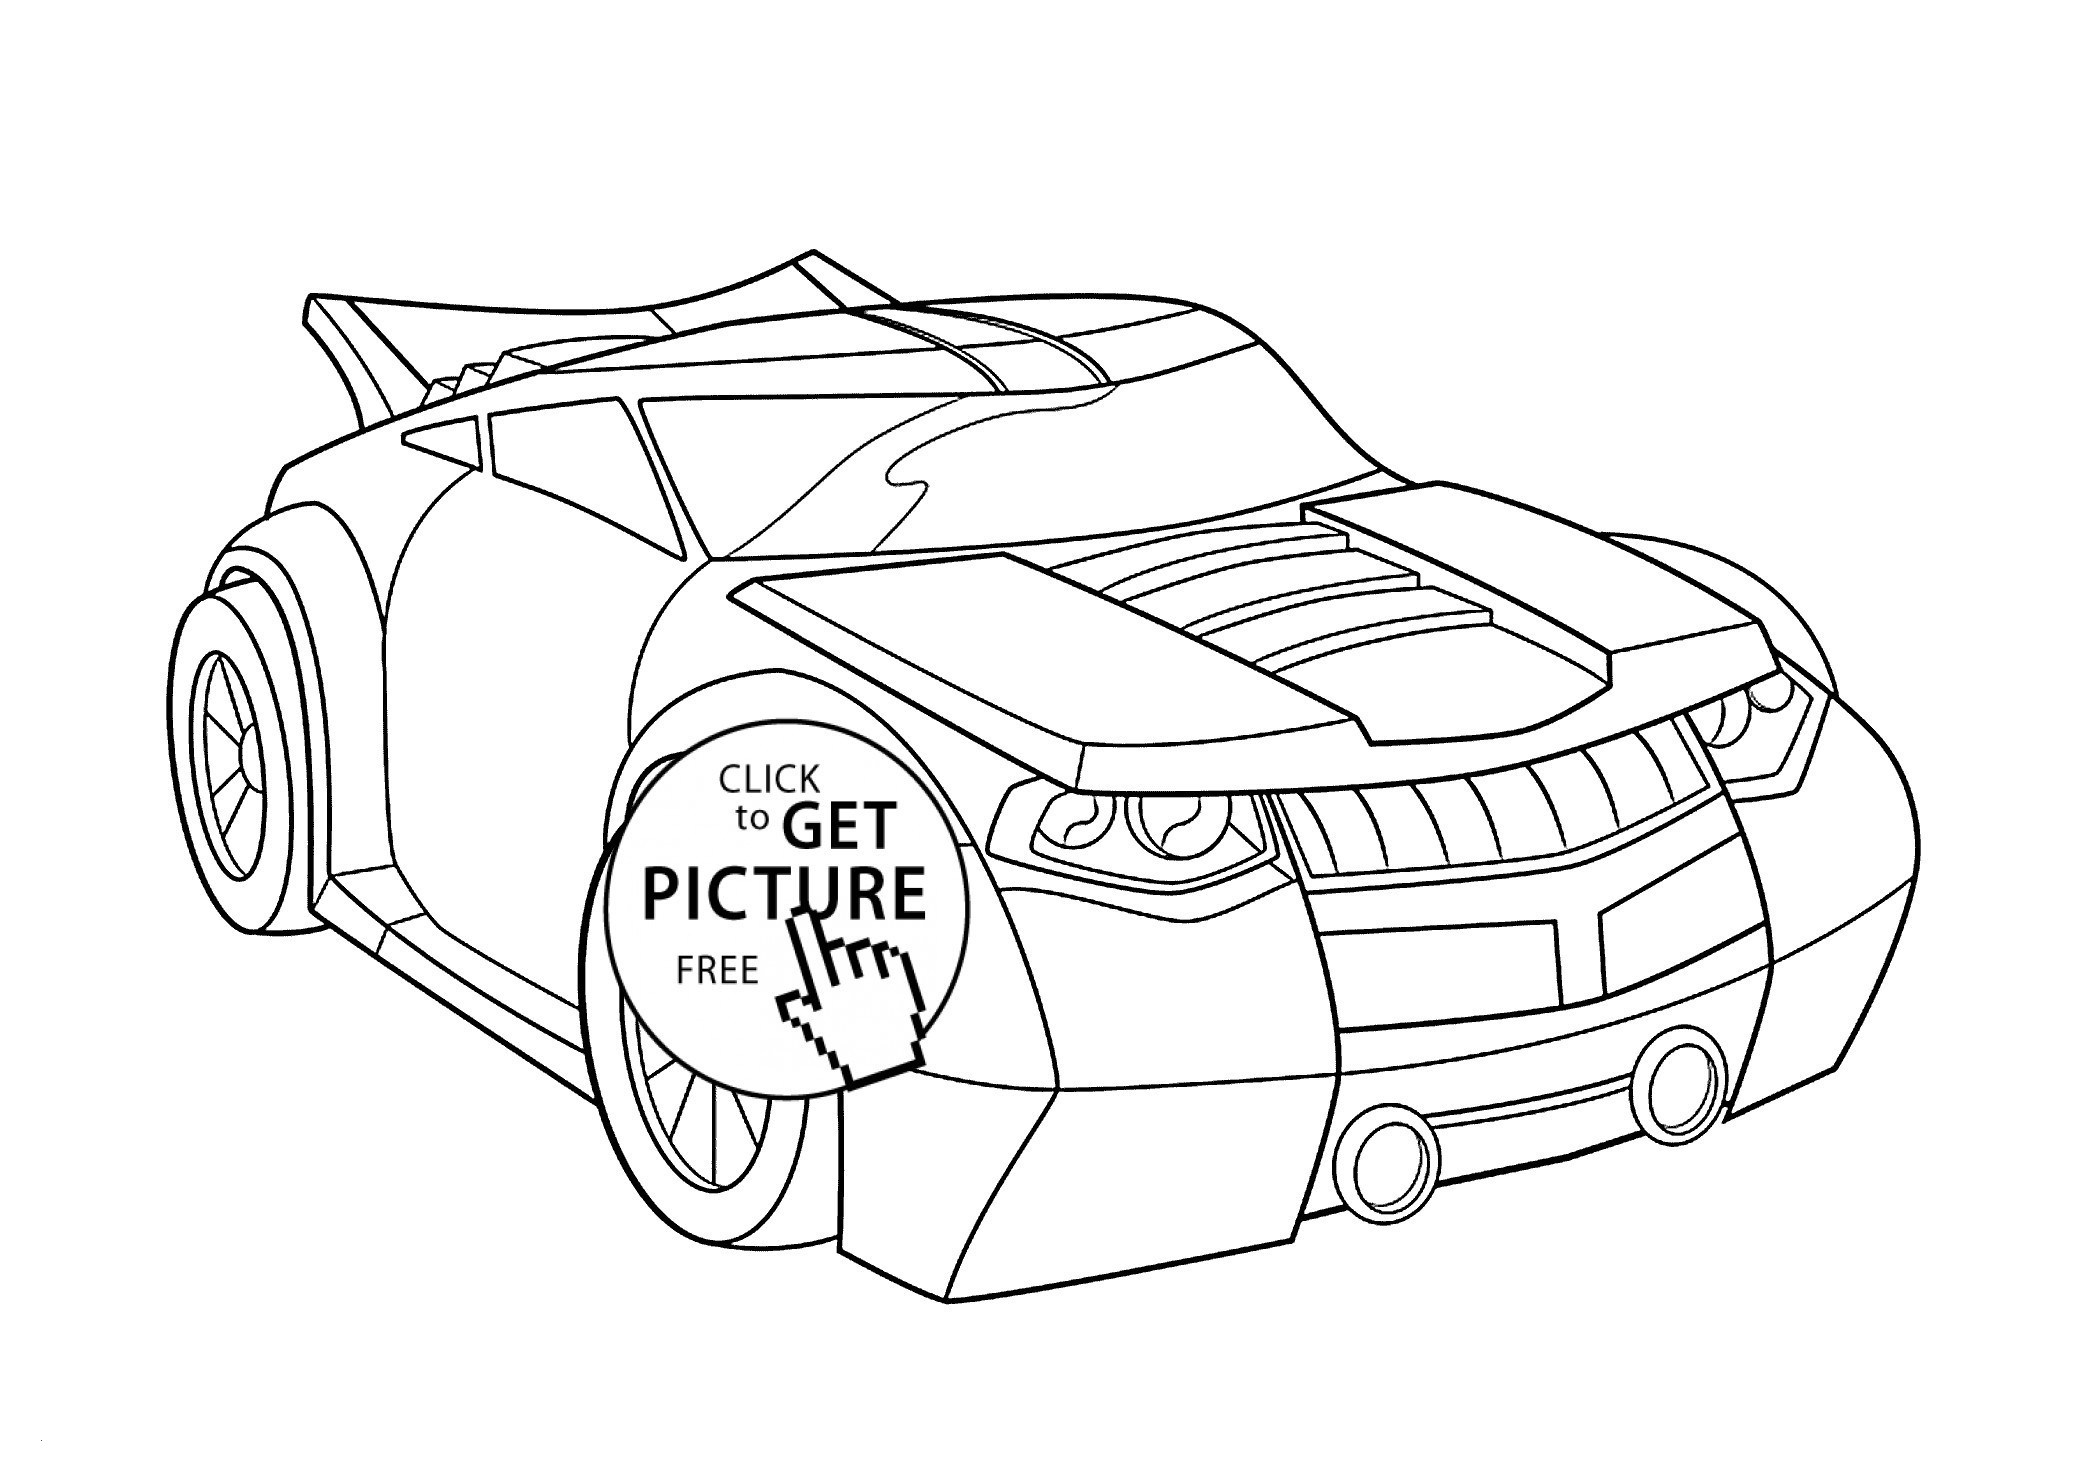 23 Cars 2 Coloring Pages Gallery Coloring Sheets